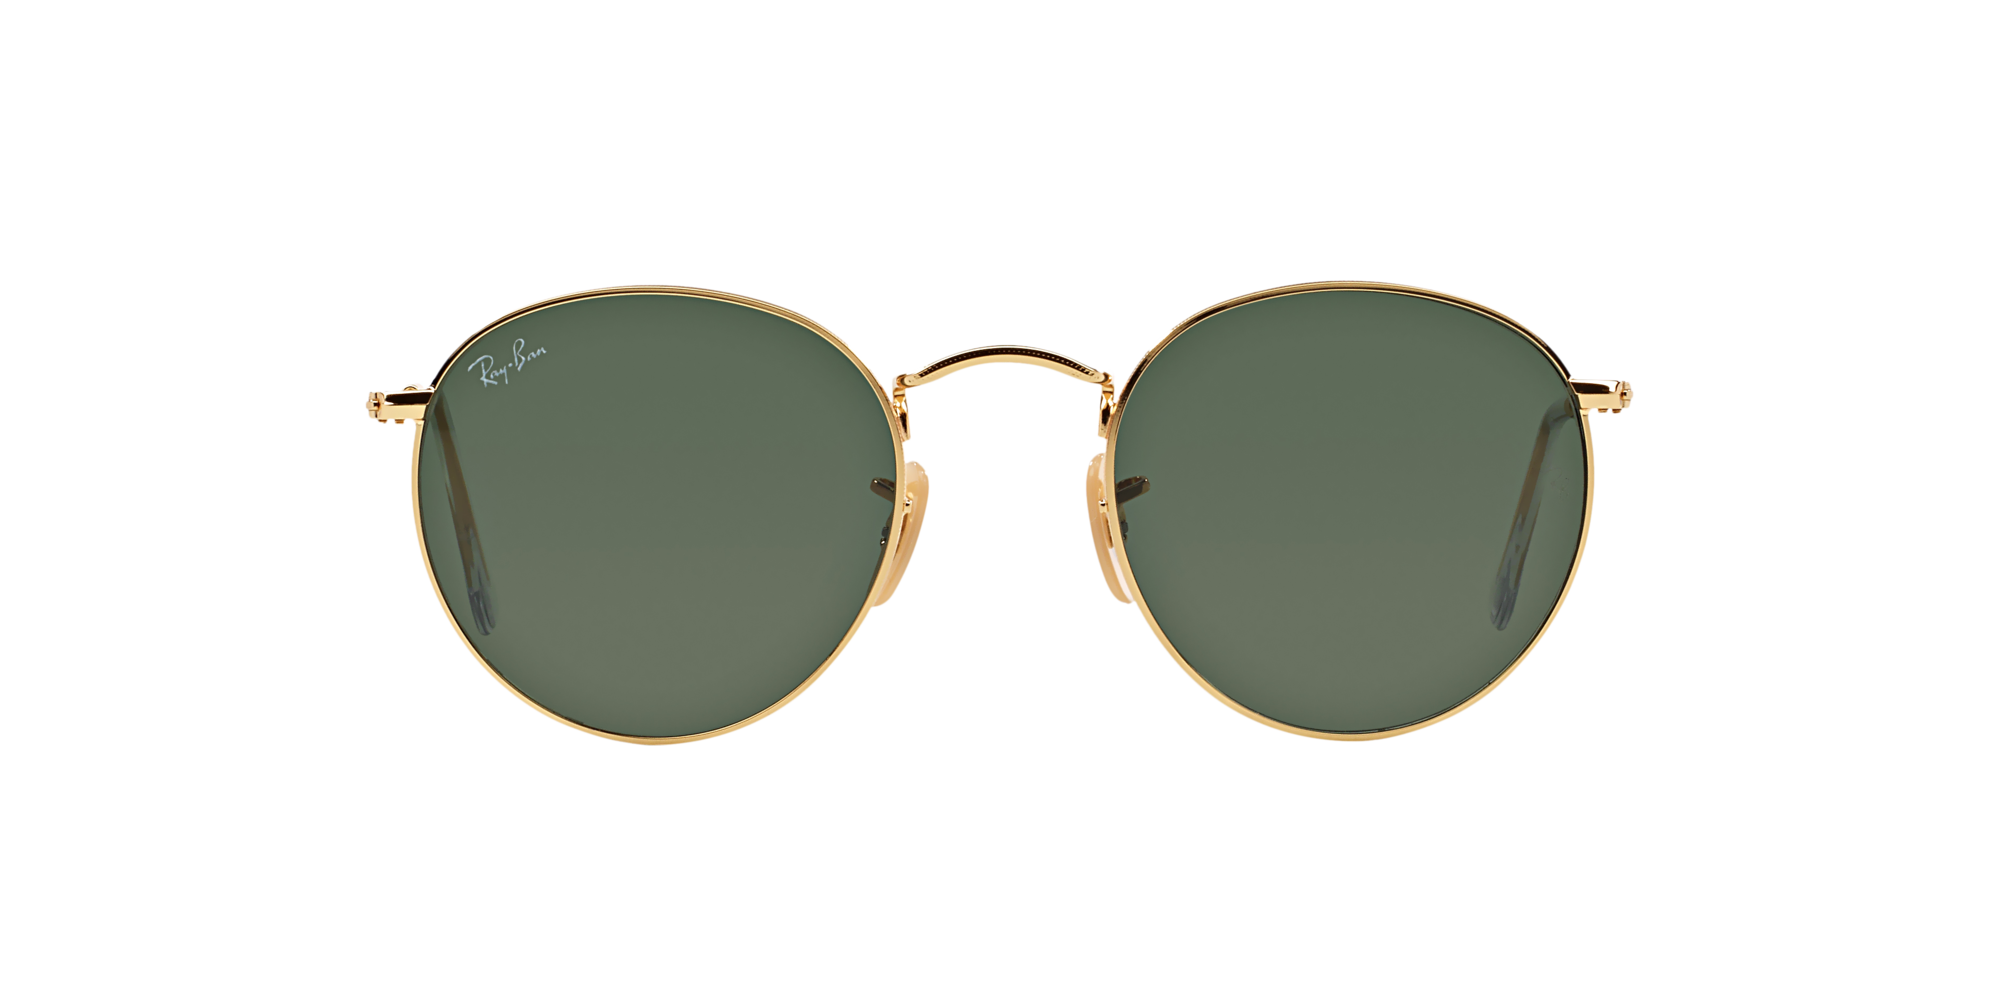 360° Product View 360° Product View  Gafas de sol Ray-Ban ROUND METAL  RB3447 001-50 VERDE CLÁSICA G-  Gafas ... 74eac3e6dd